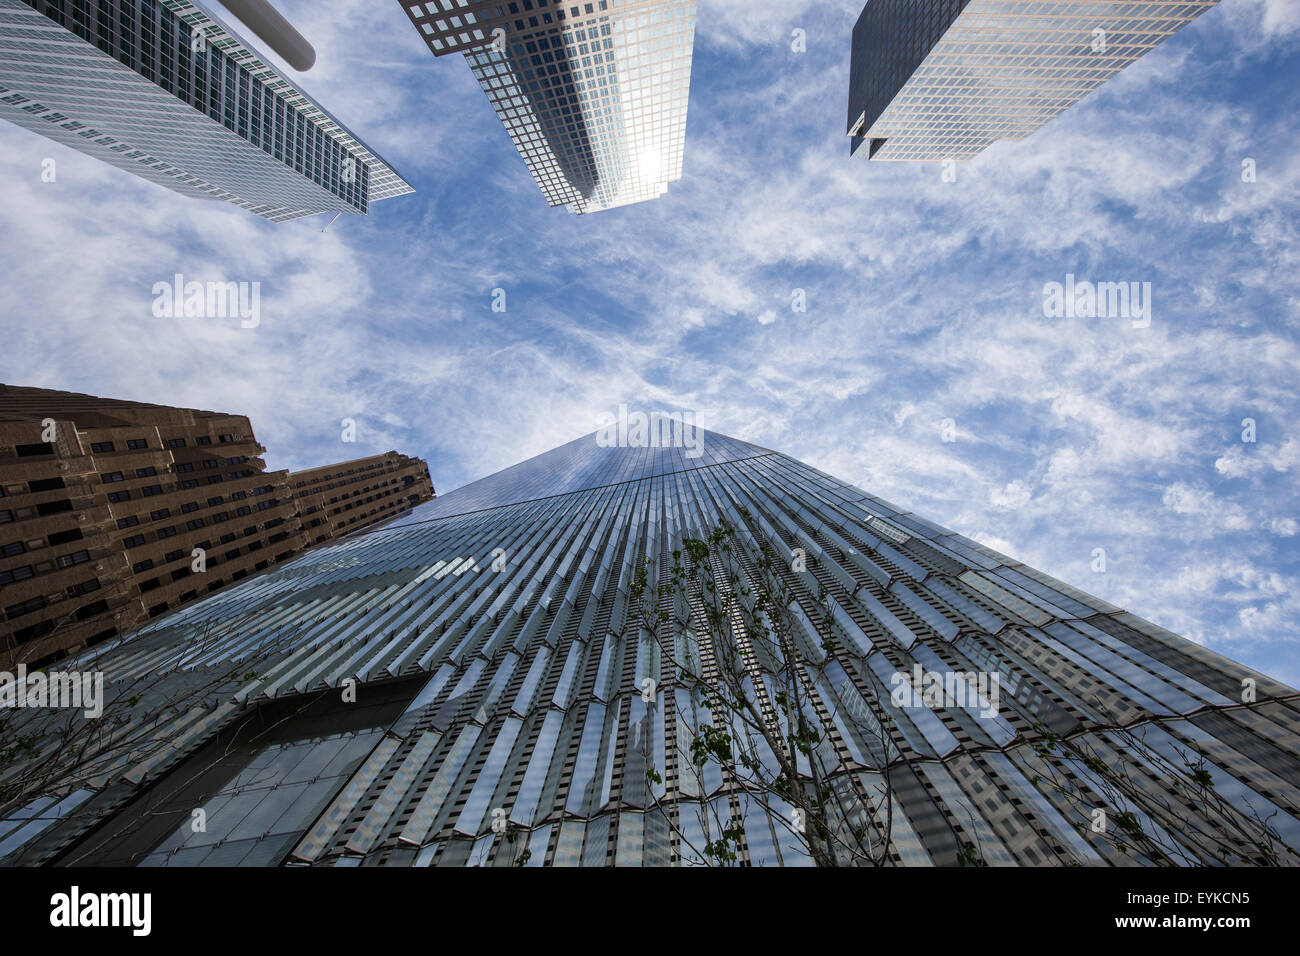 Looking up at the One World Trade Center Tower in New York City Stock Photo